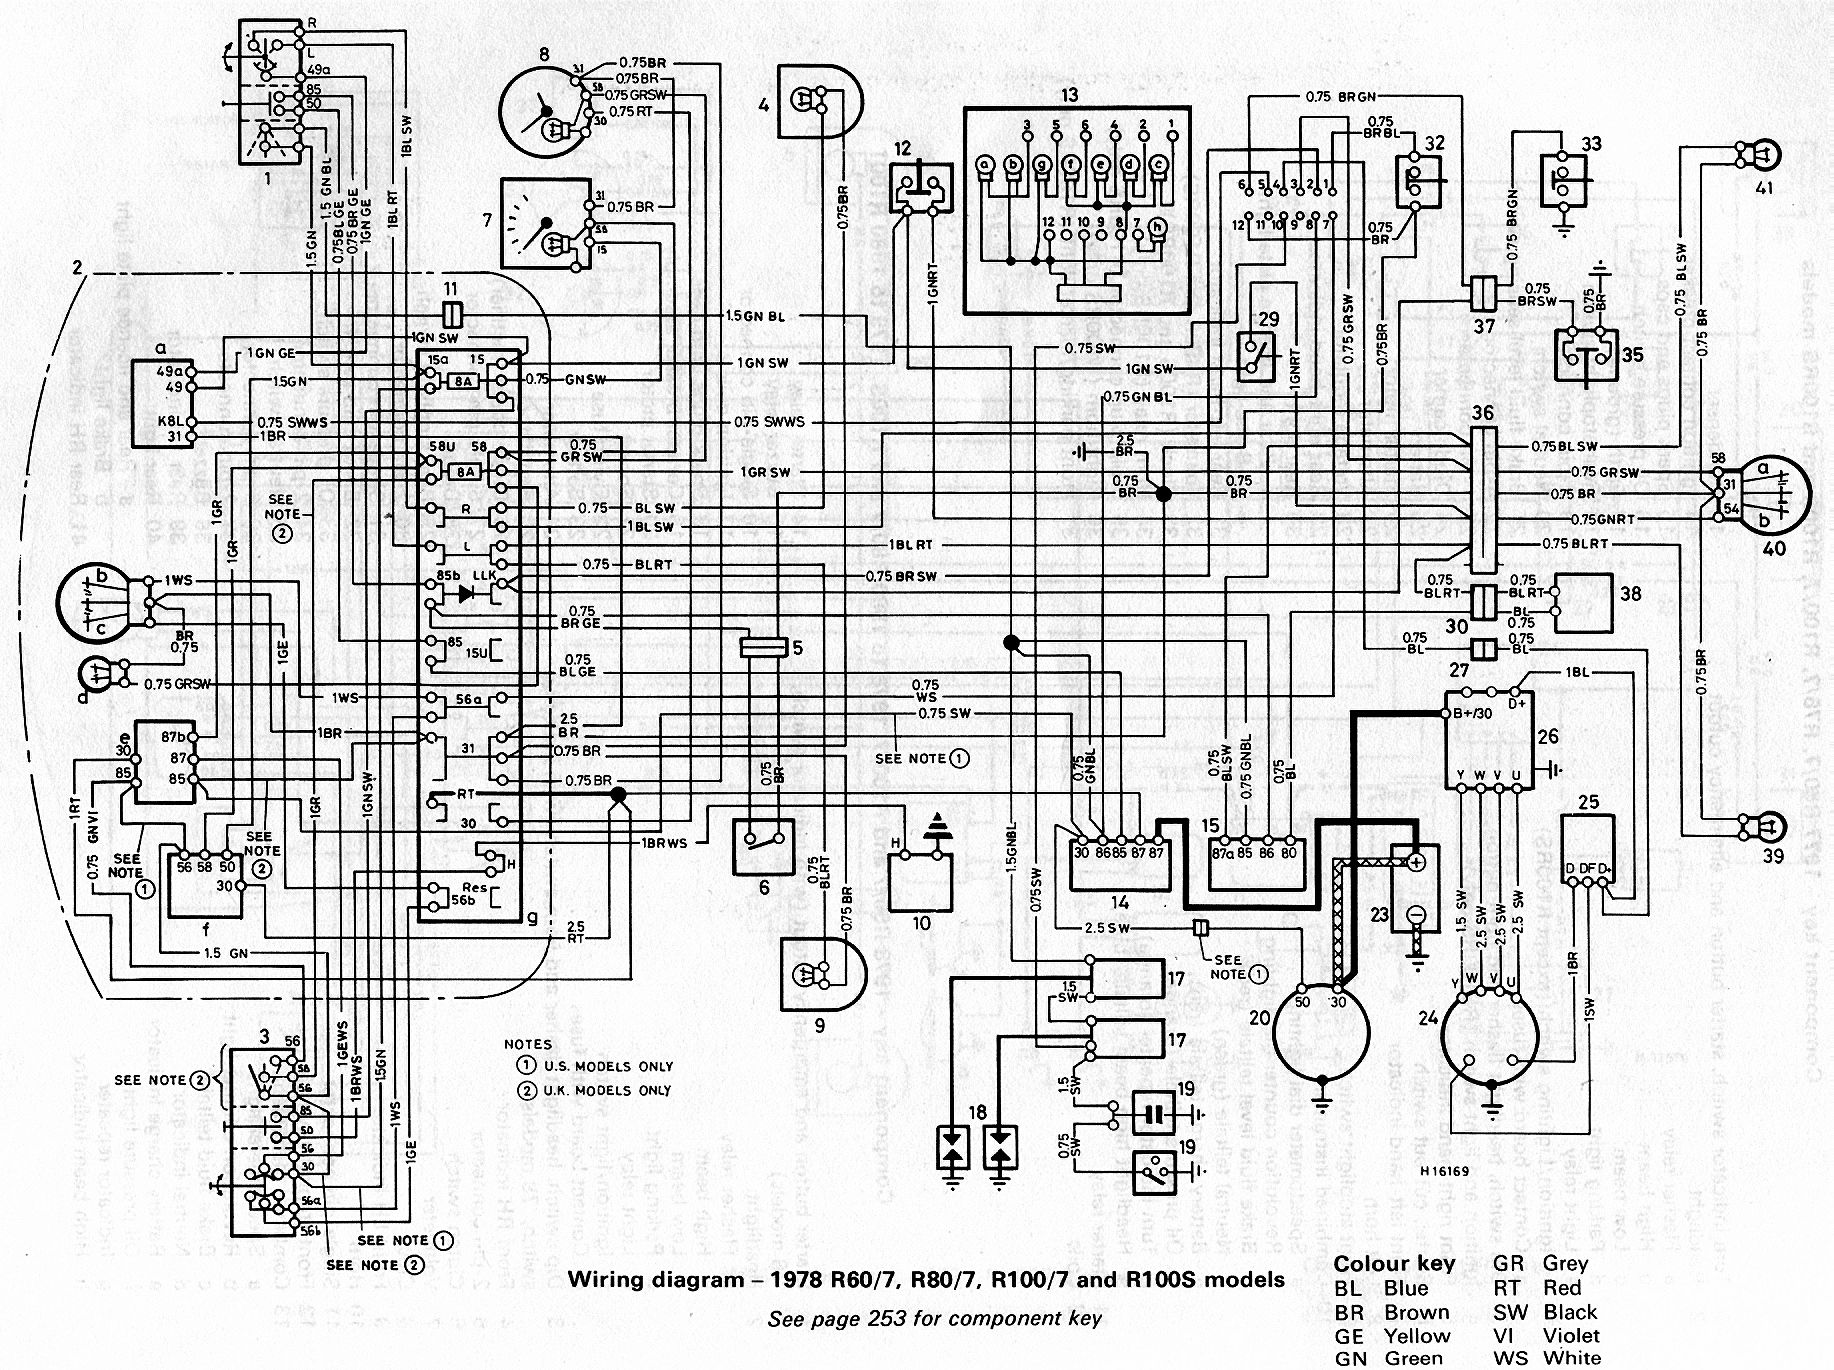 bmw 1984 r80/7 wiring diagram | Chassis Wire Harness BMW R Airhead R60 R75